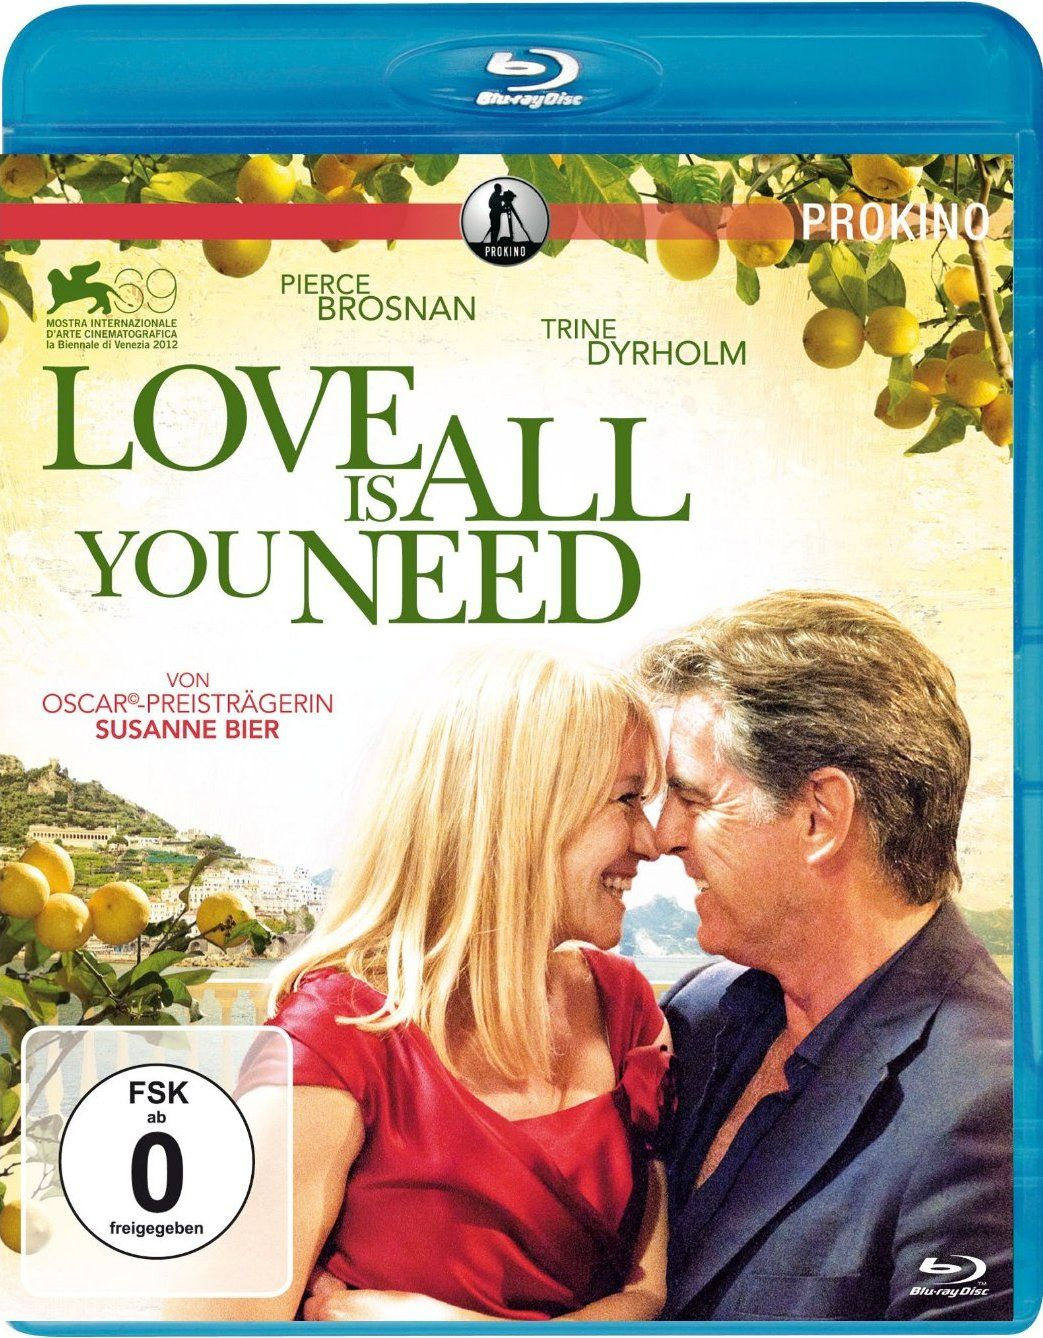 Love is All You Need [MULTI | HD 720p] dvdrip